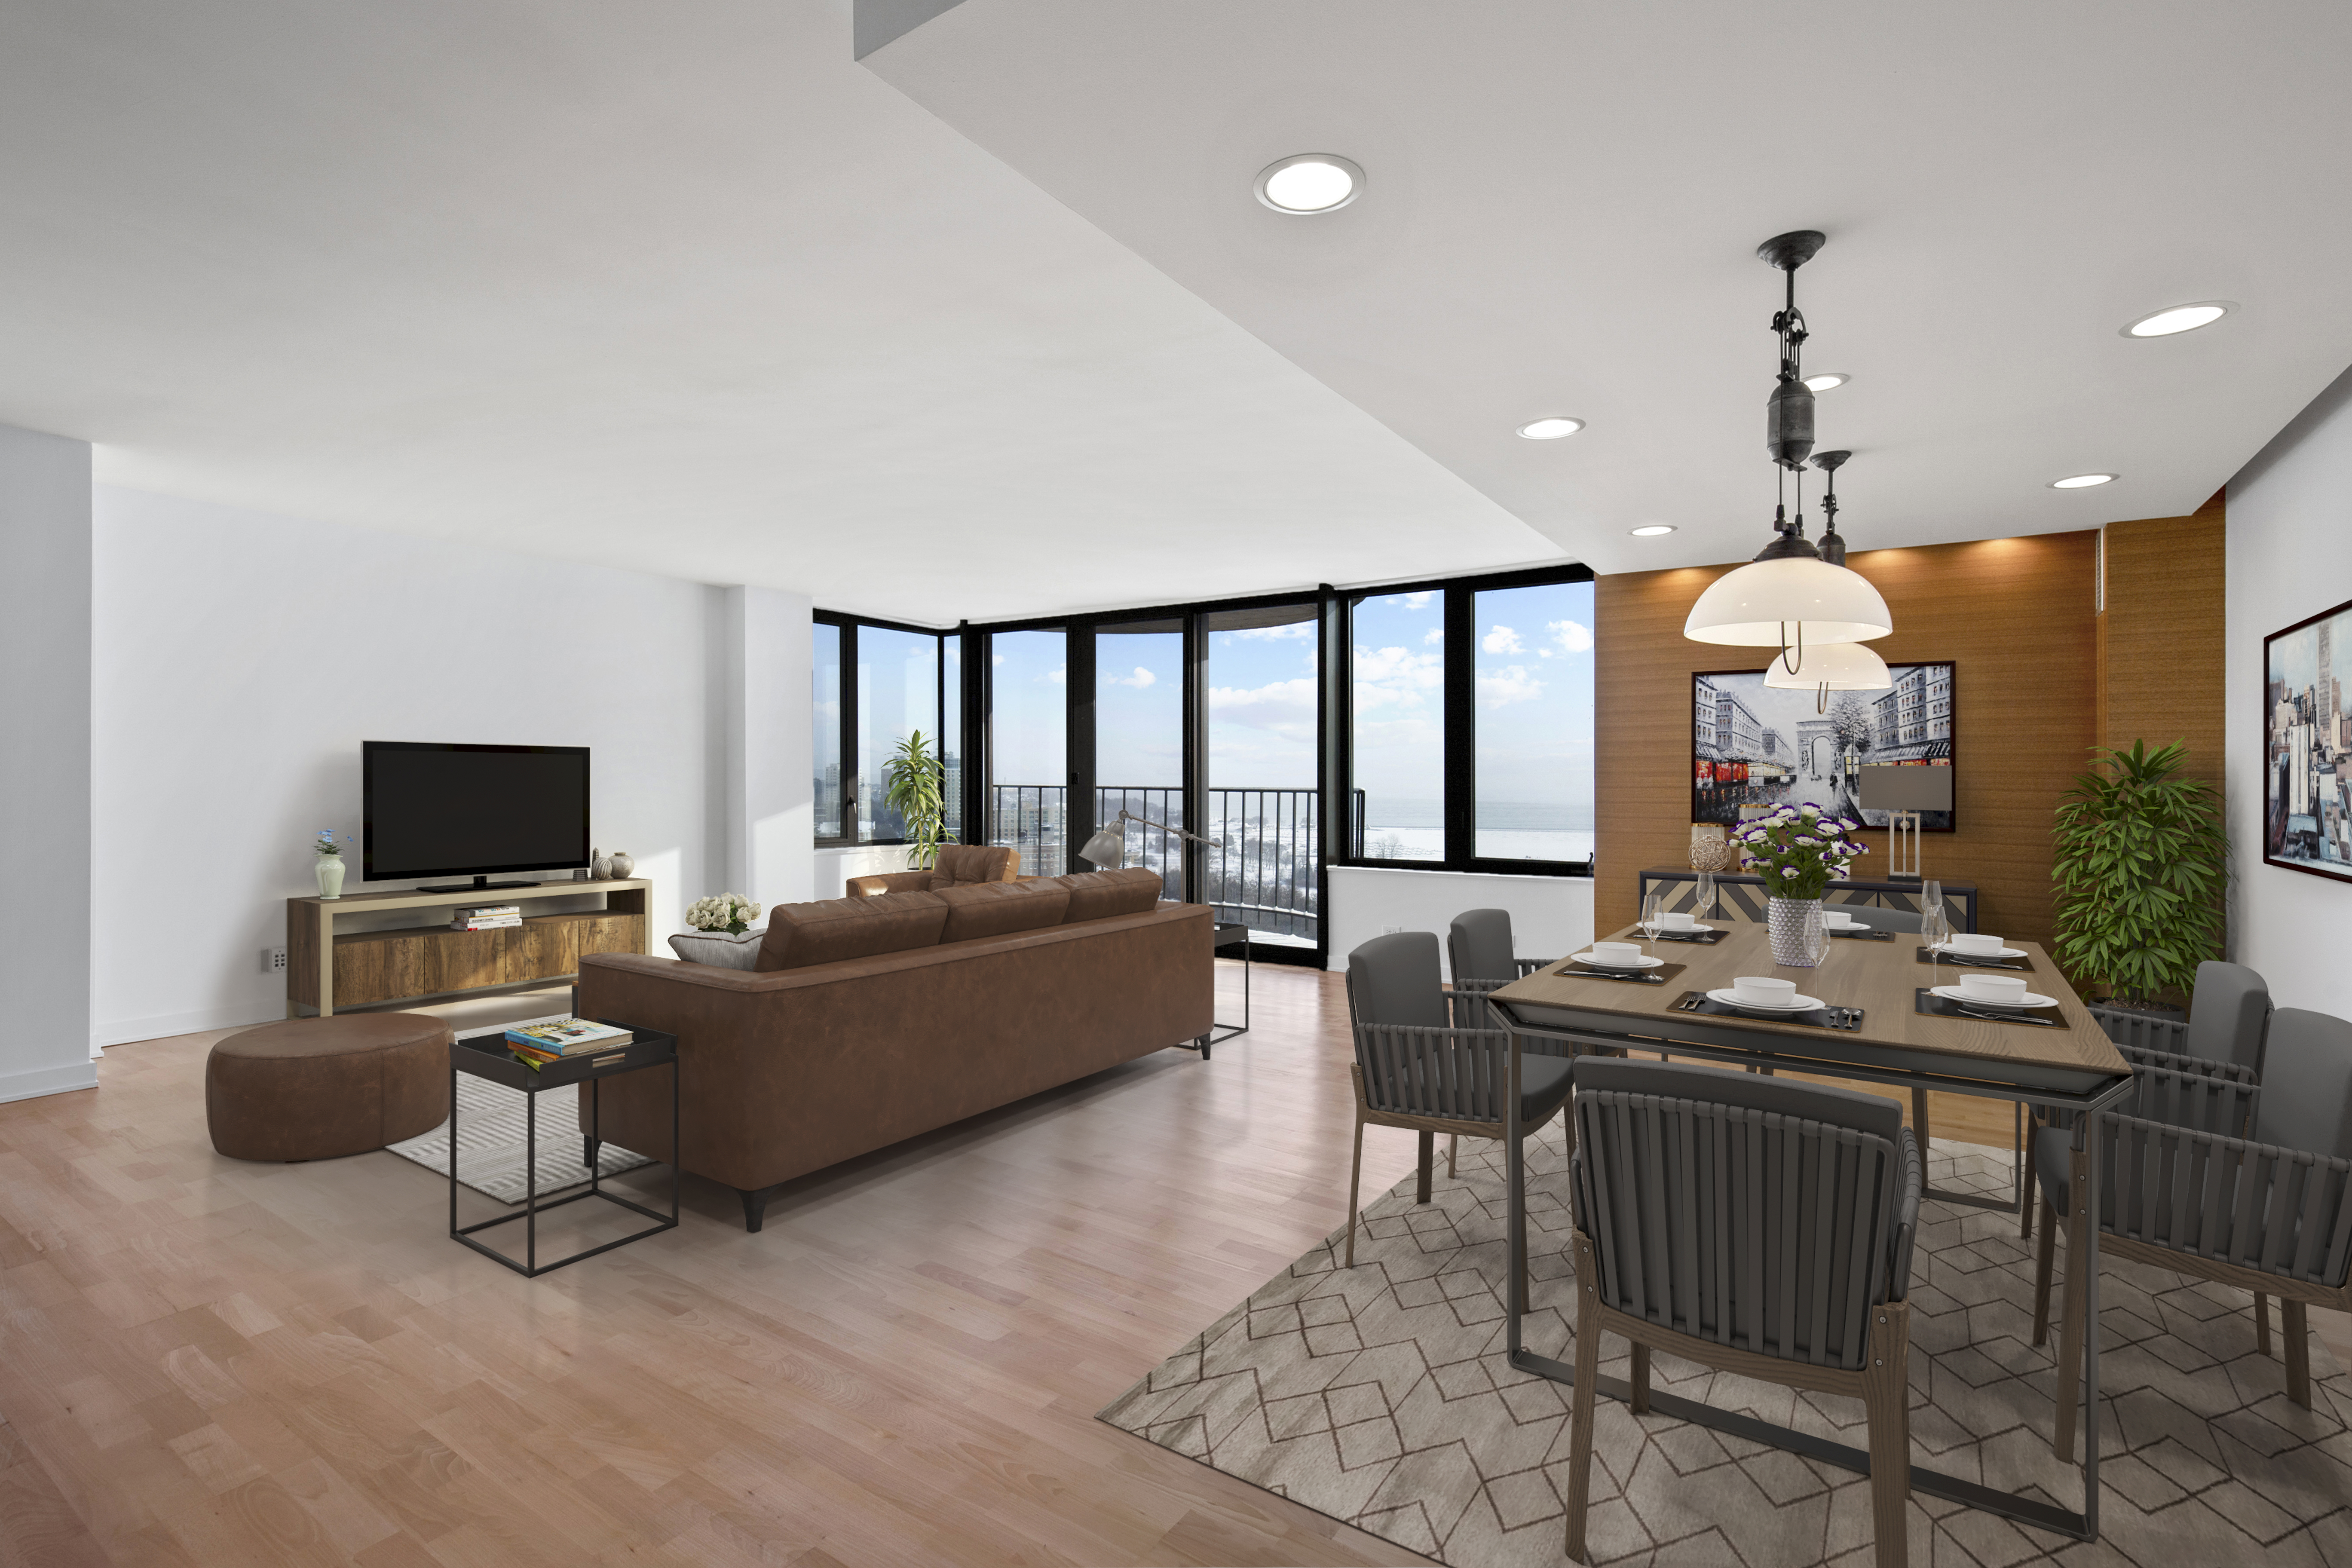 929 N. Astor St., #1808, with virtual staging. Photo courtesy of Corley Real Estate.